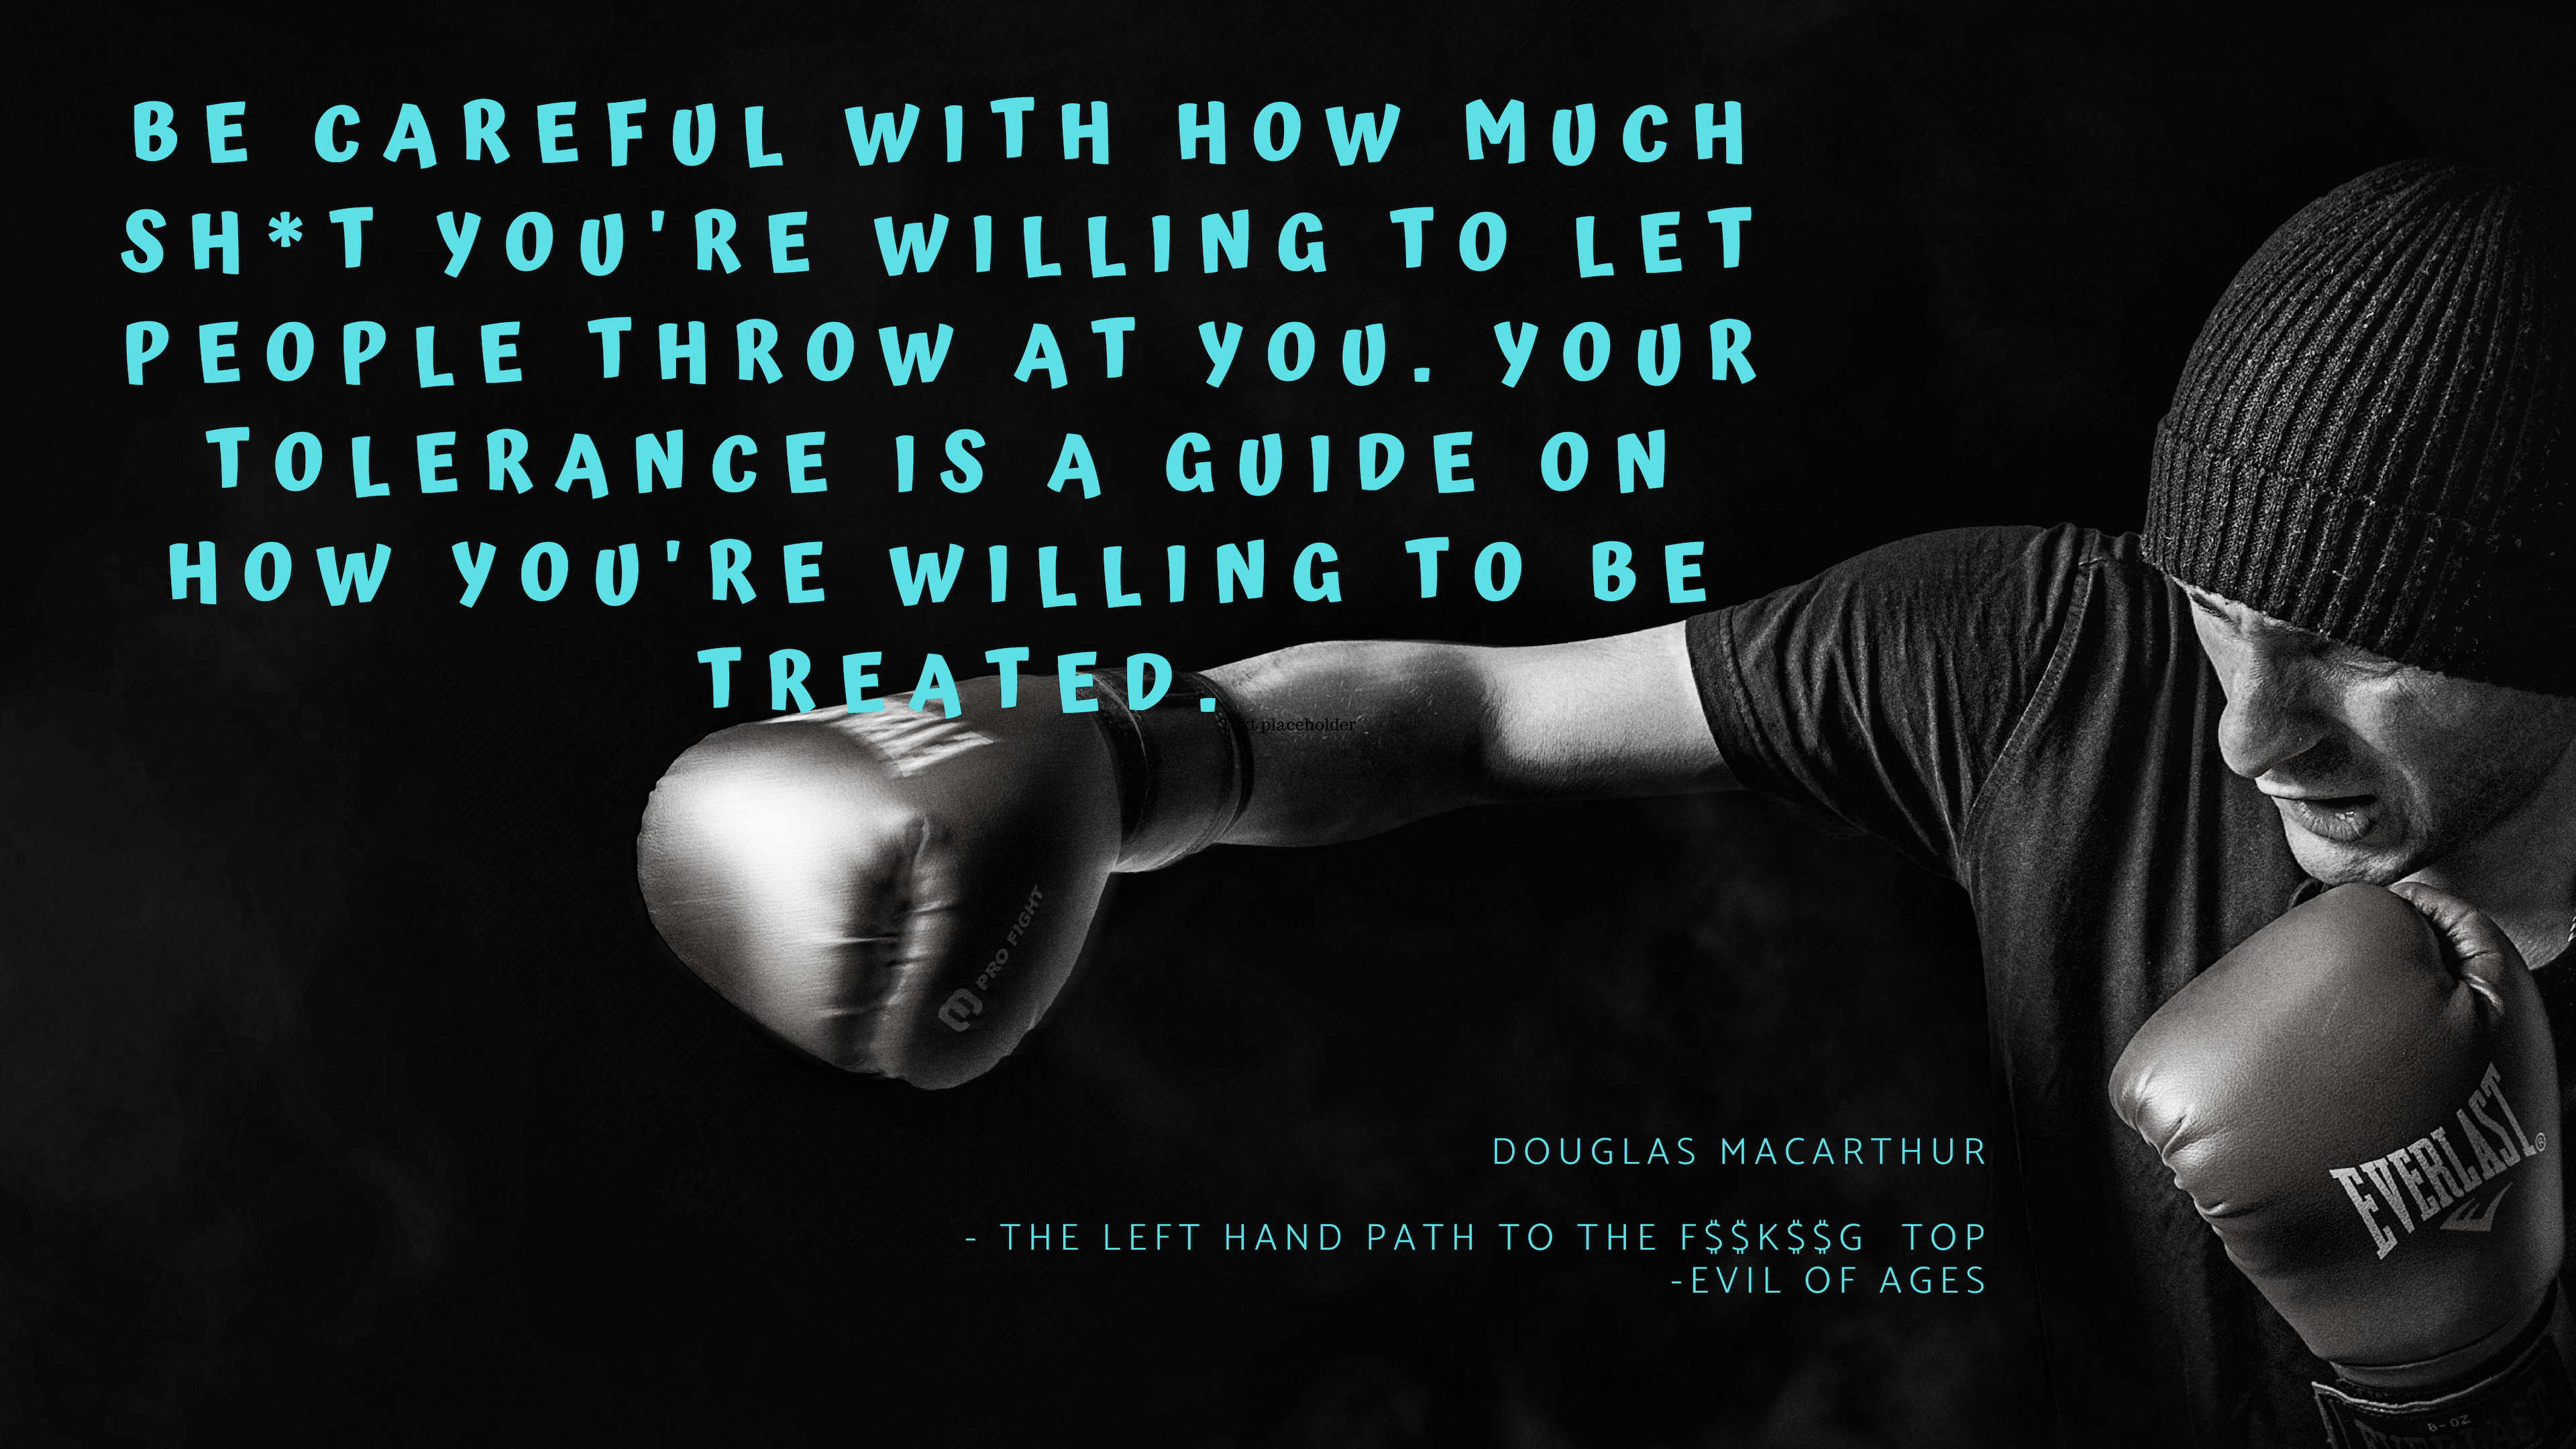 Be careful with – Douglas MacArthur [3840 x 2160] [OC]